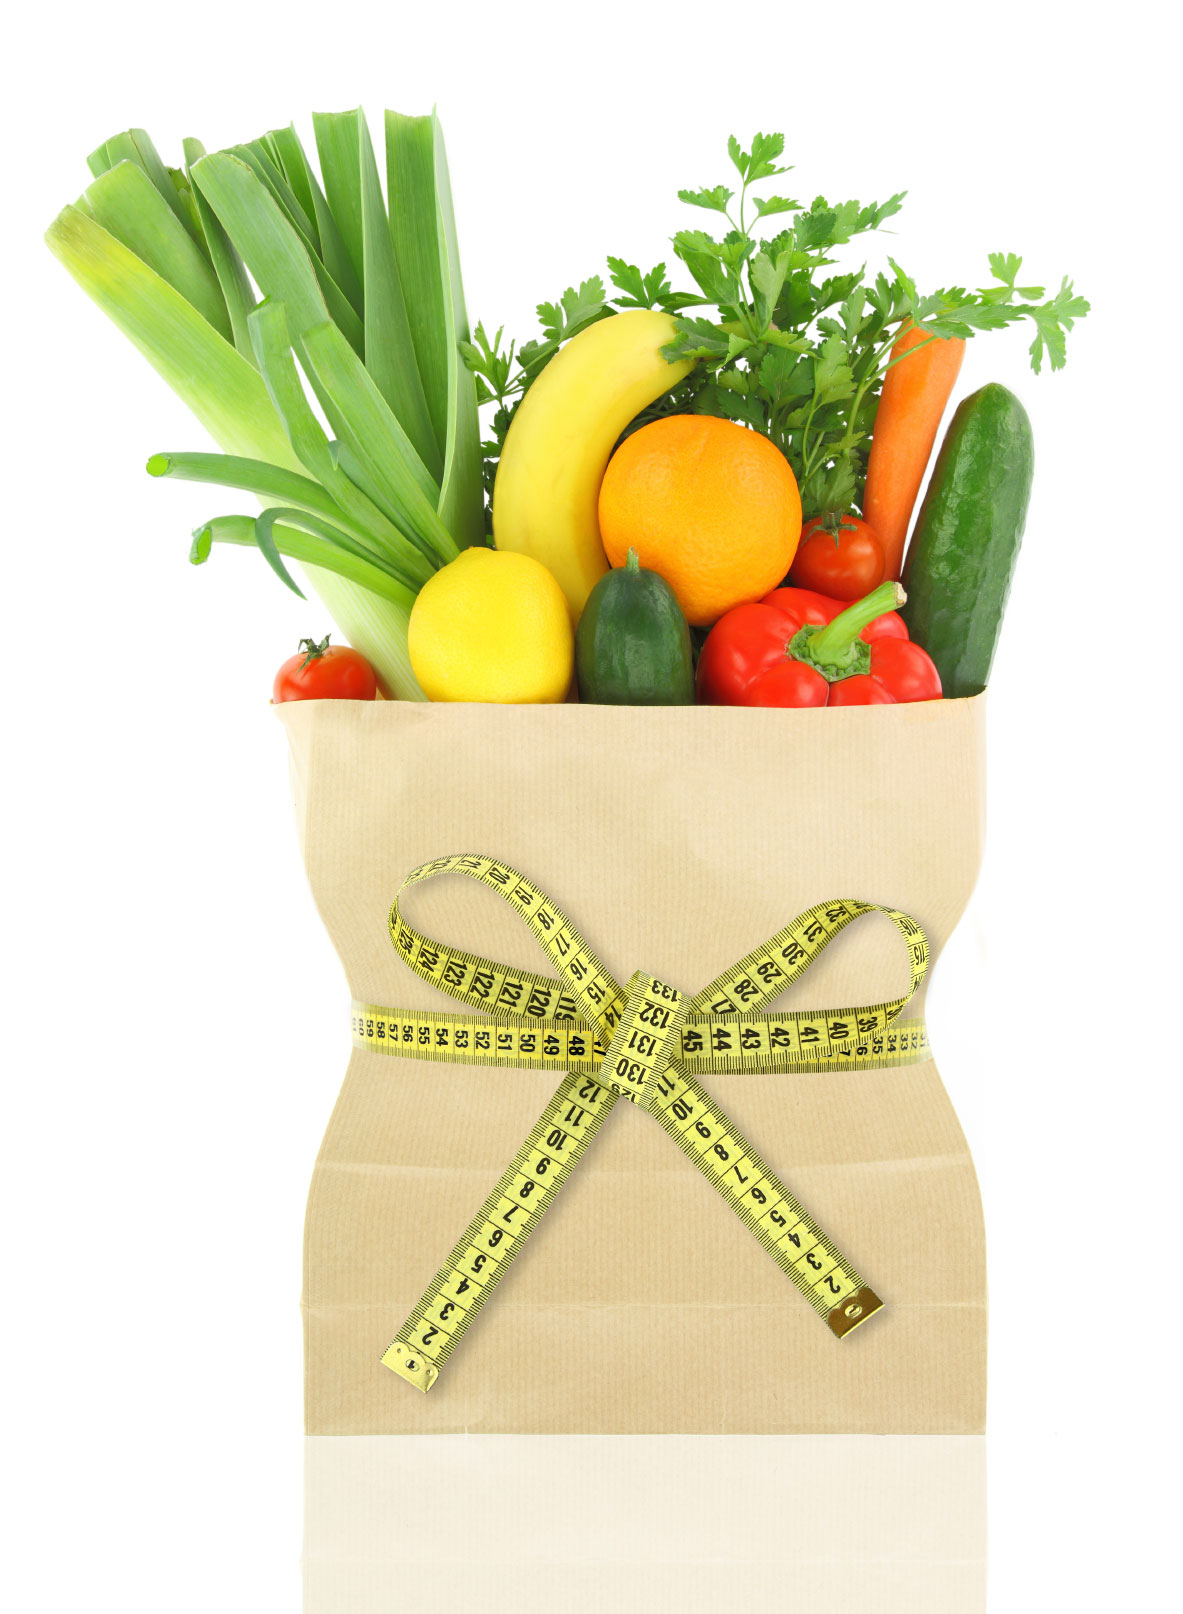 My Fat-Burning Grocery List (copy this)